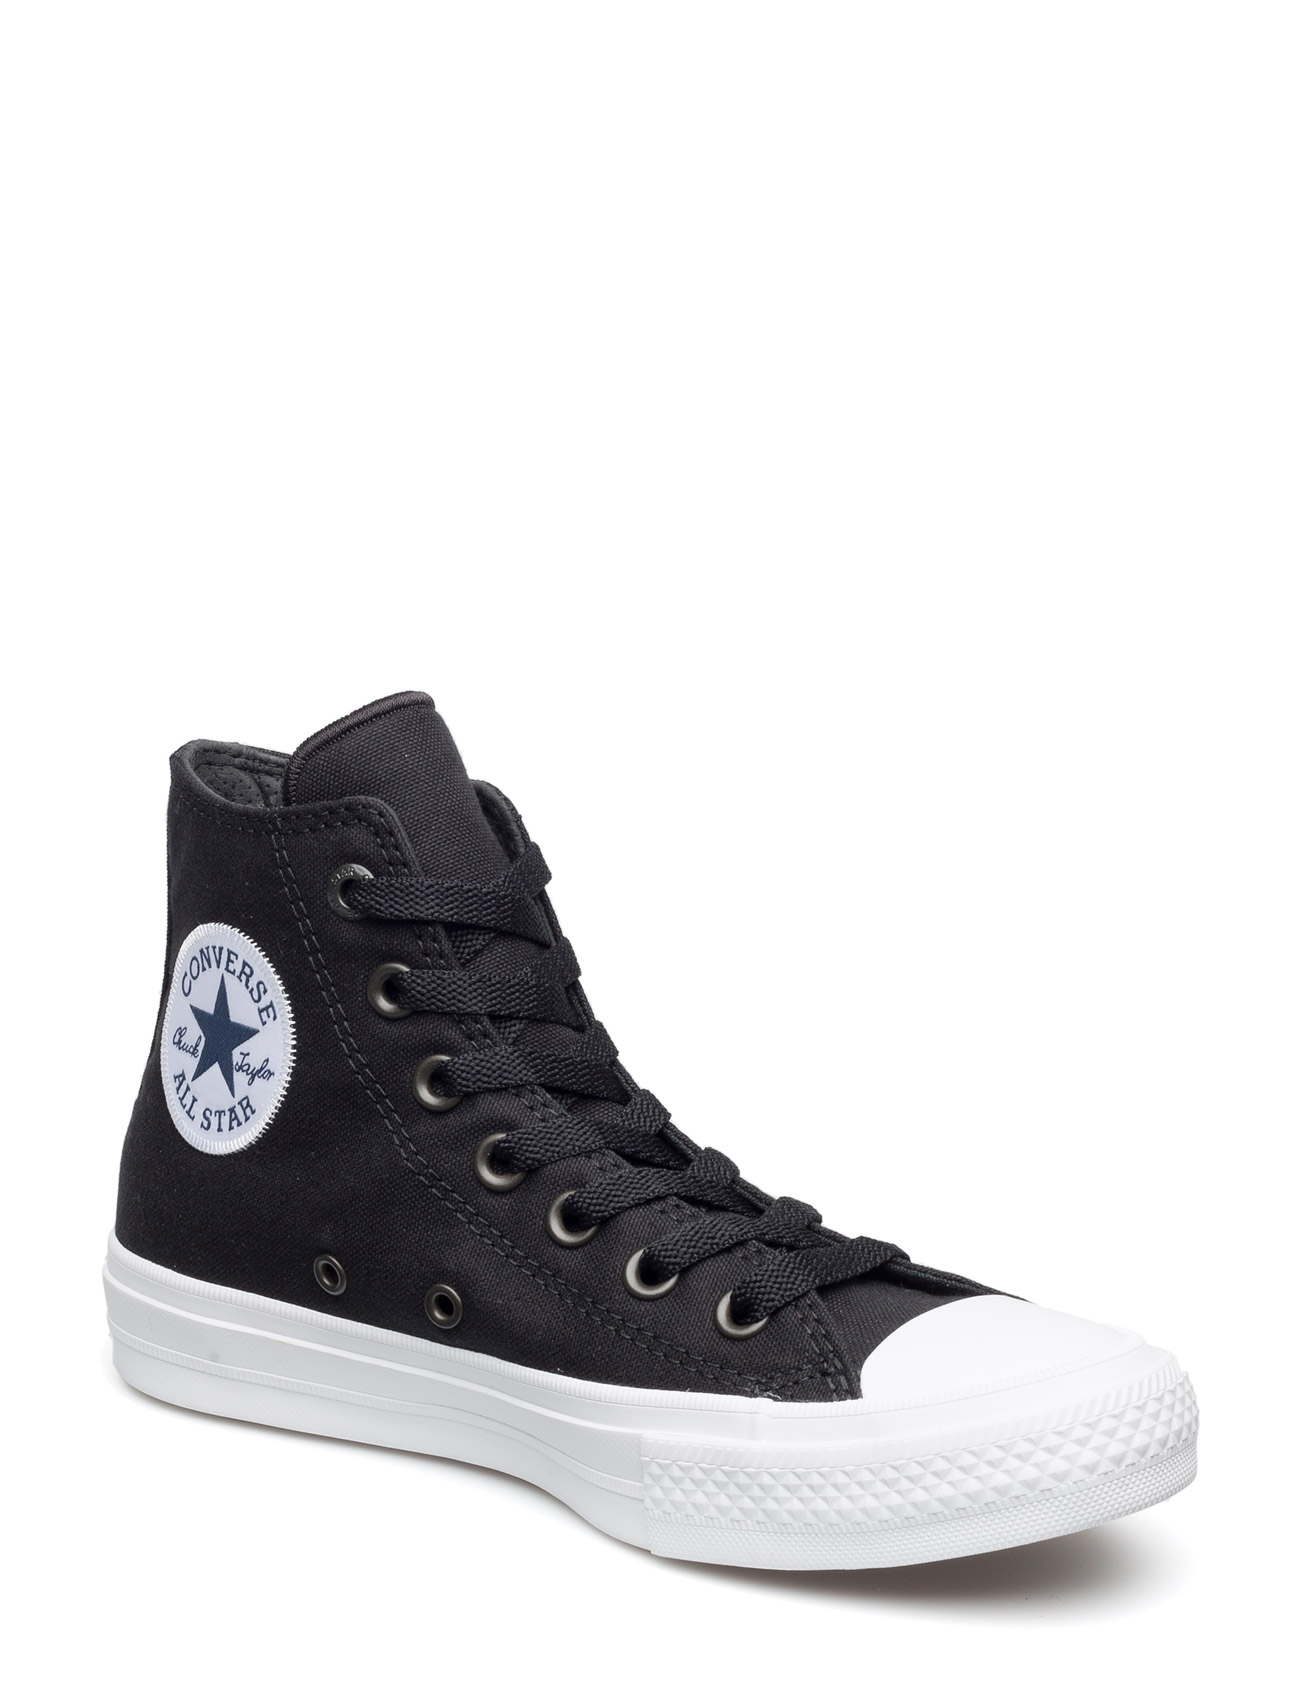 Ct Ii Hi Black/White/Navy thumbnail